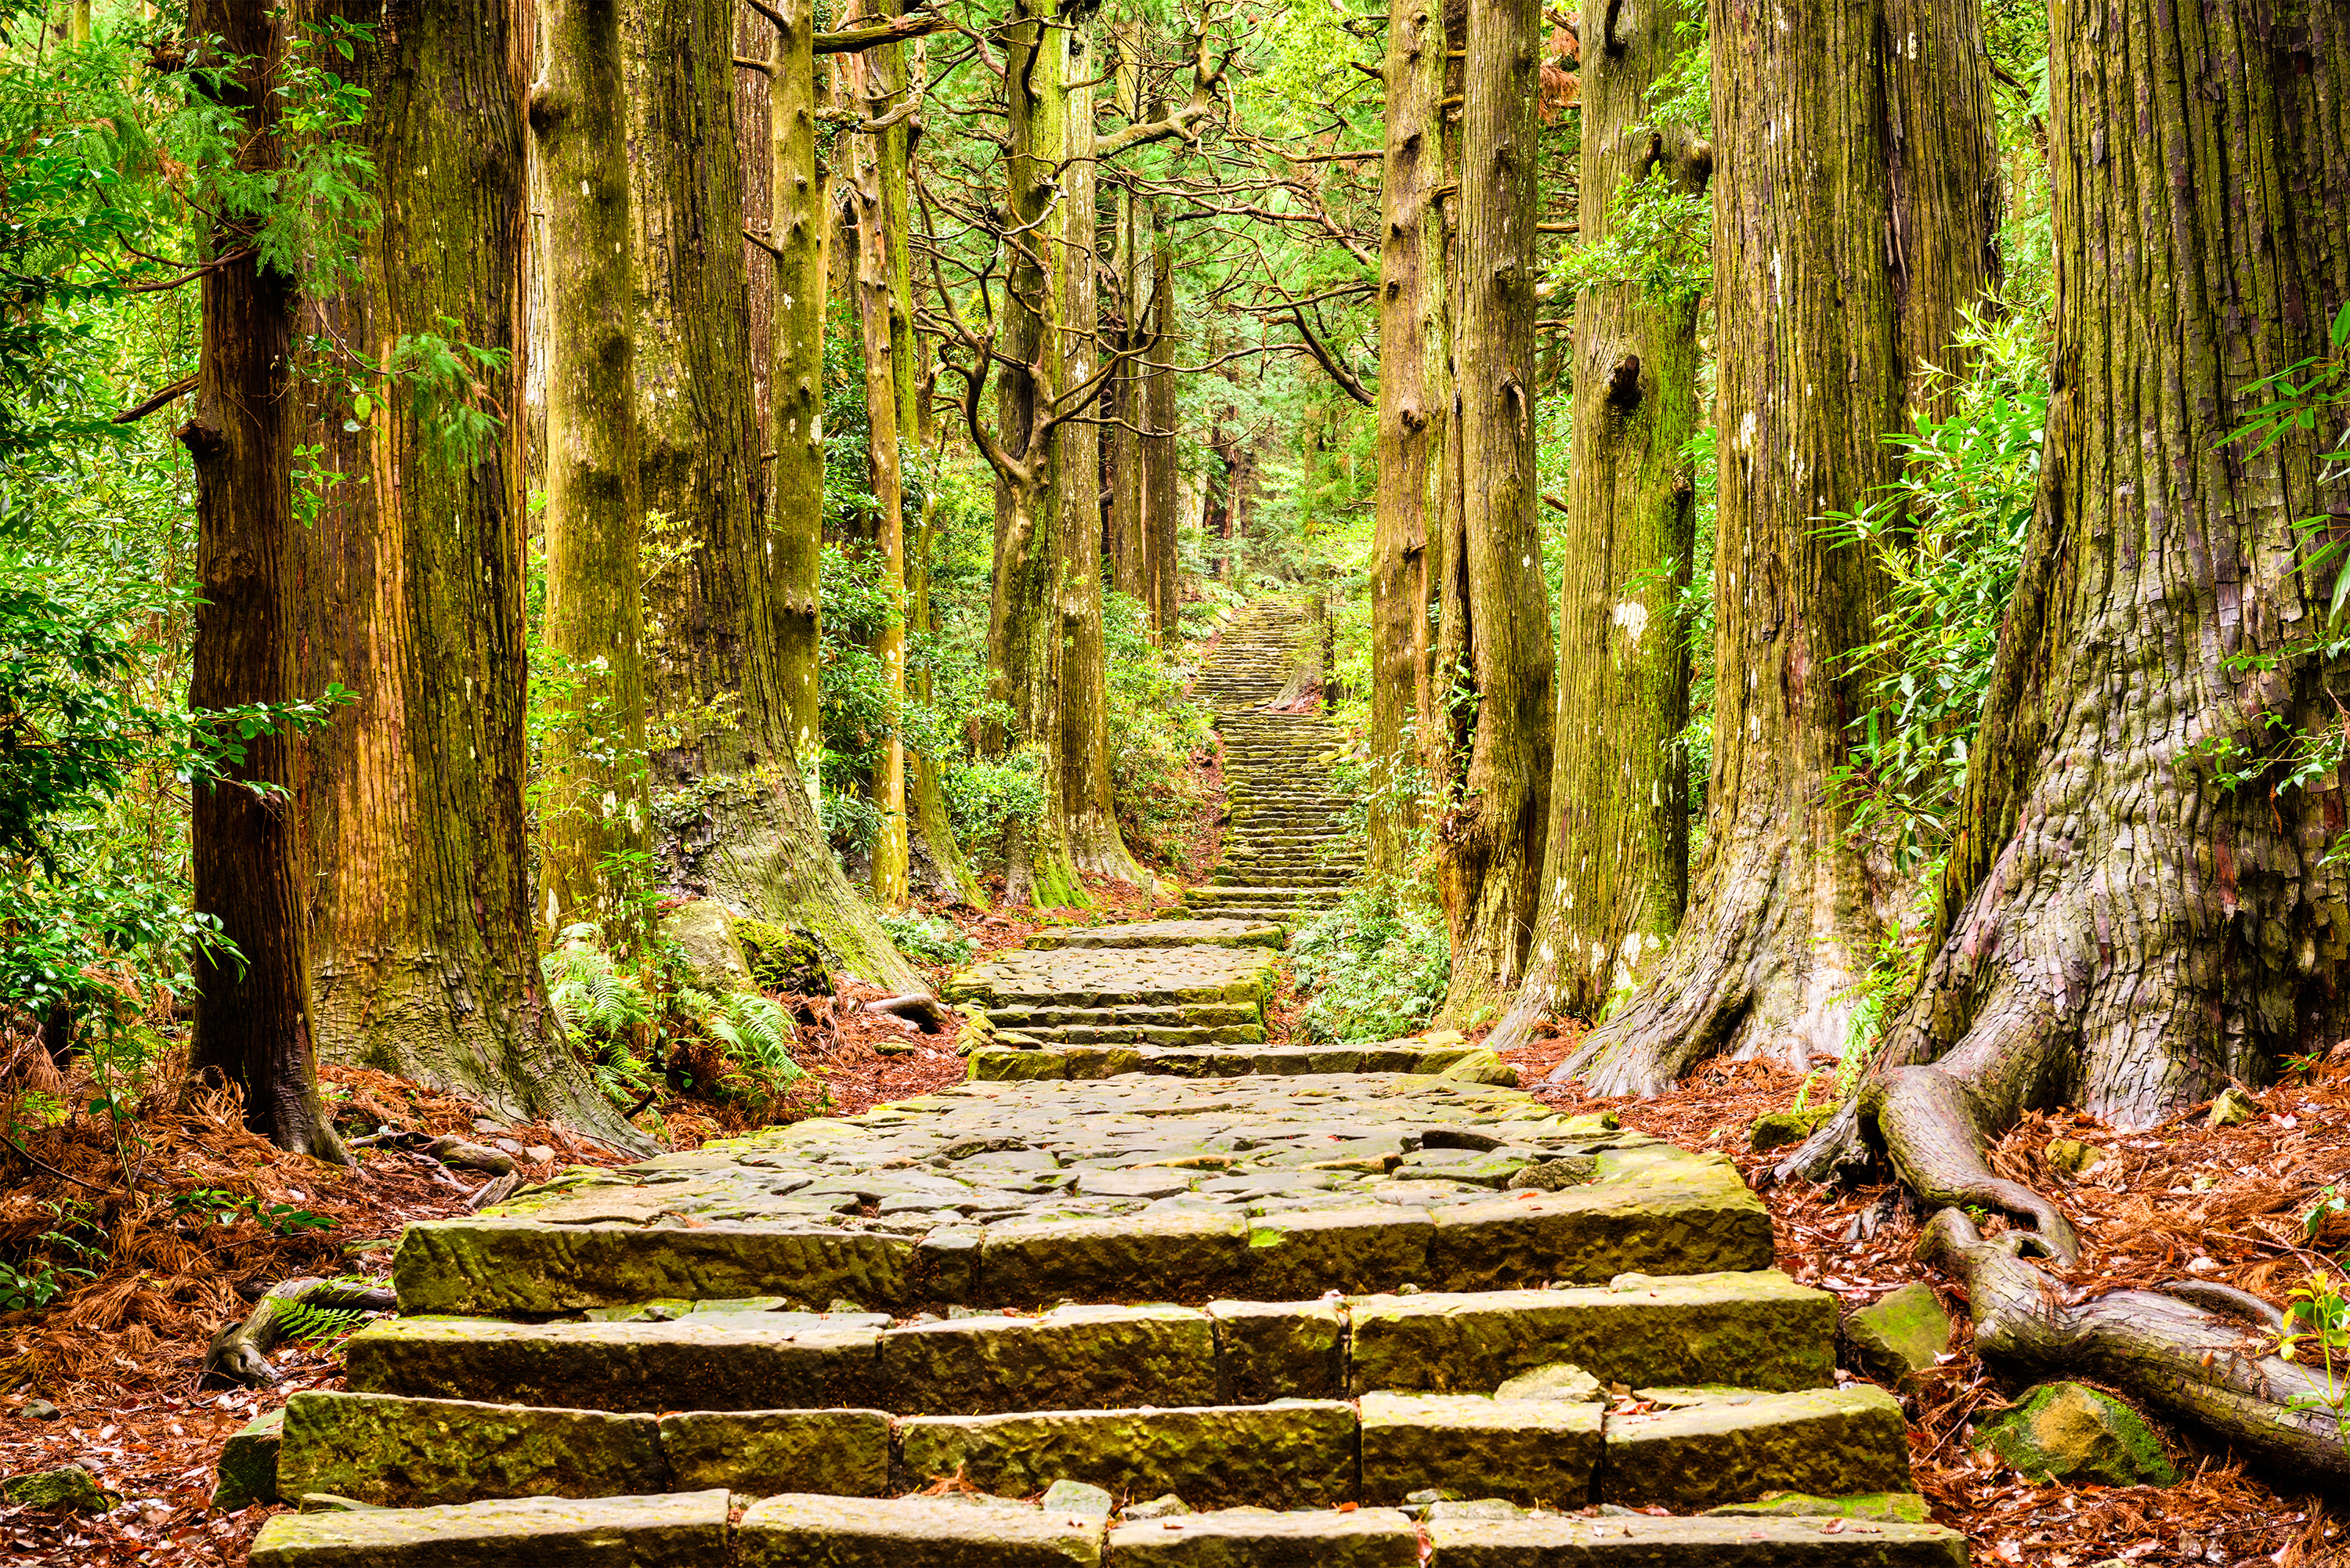 kumano kodo trail in japan